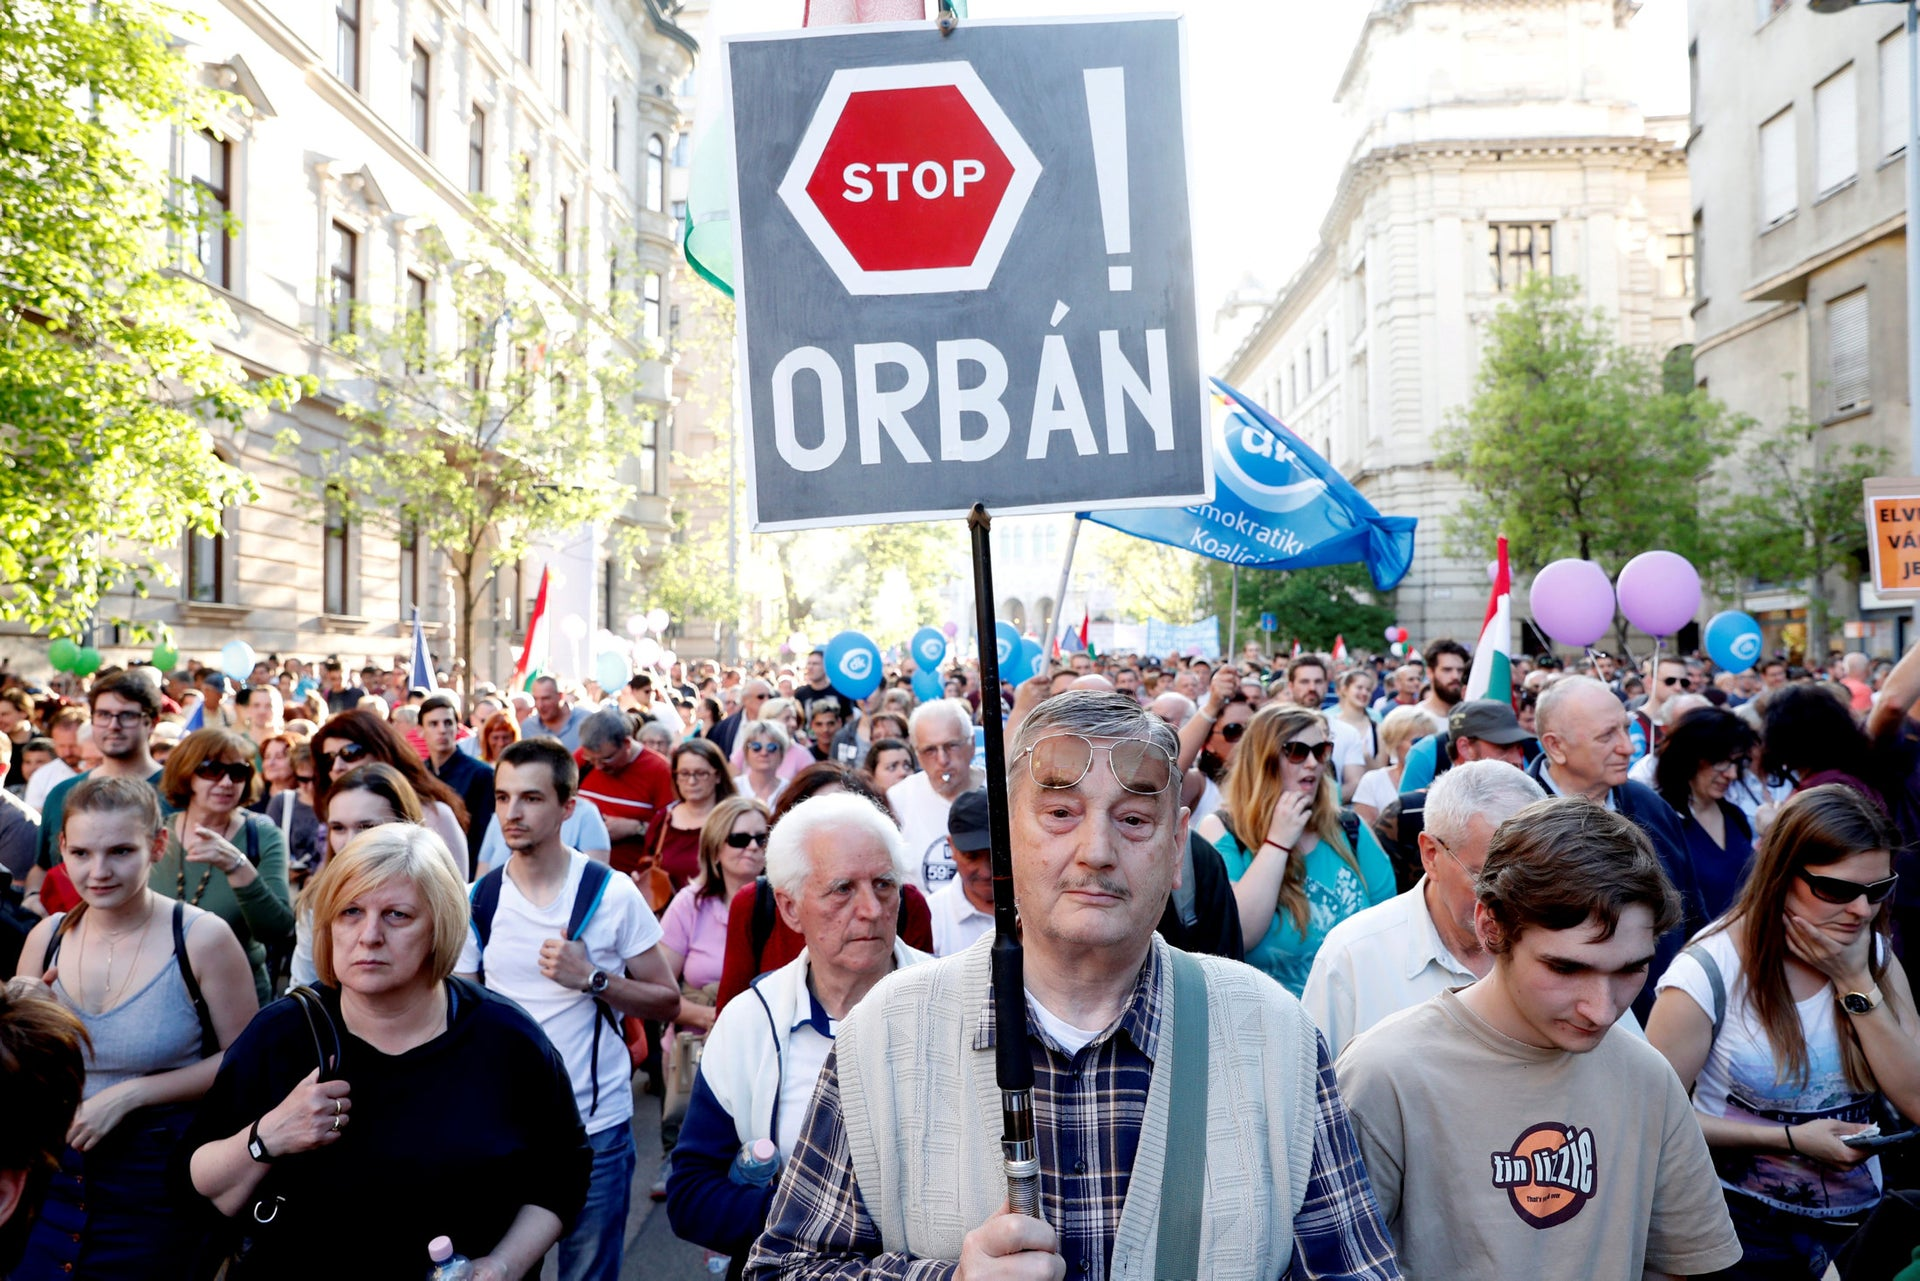 Protesters attending a demonstrating against the government of Prime Minister Viktor Orbán in Budapest, Hungary, April 21, 2018.